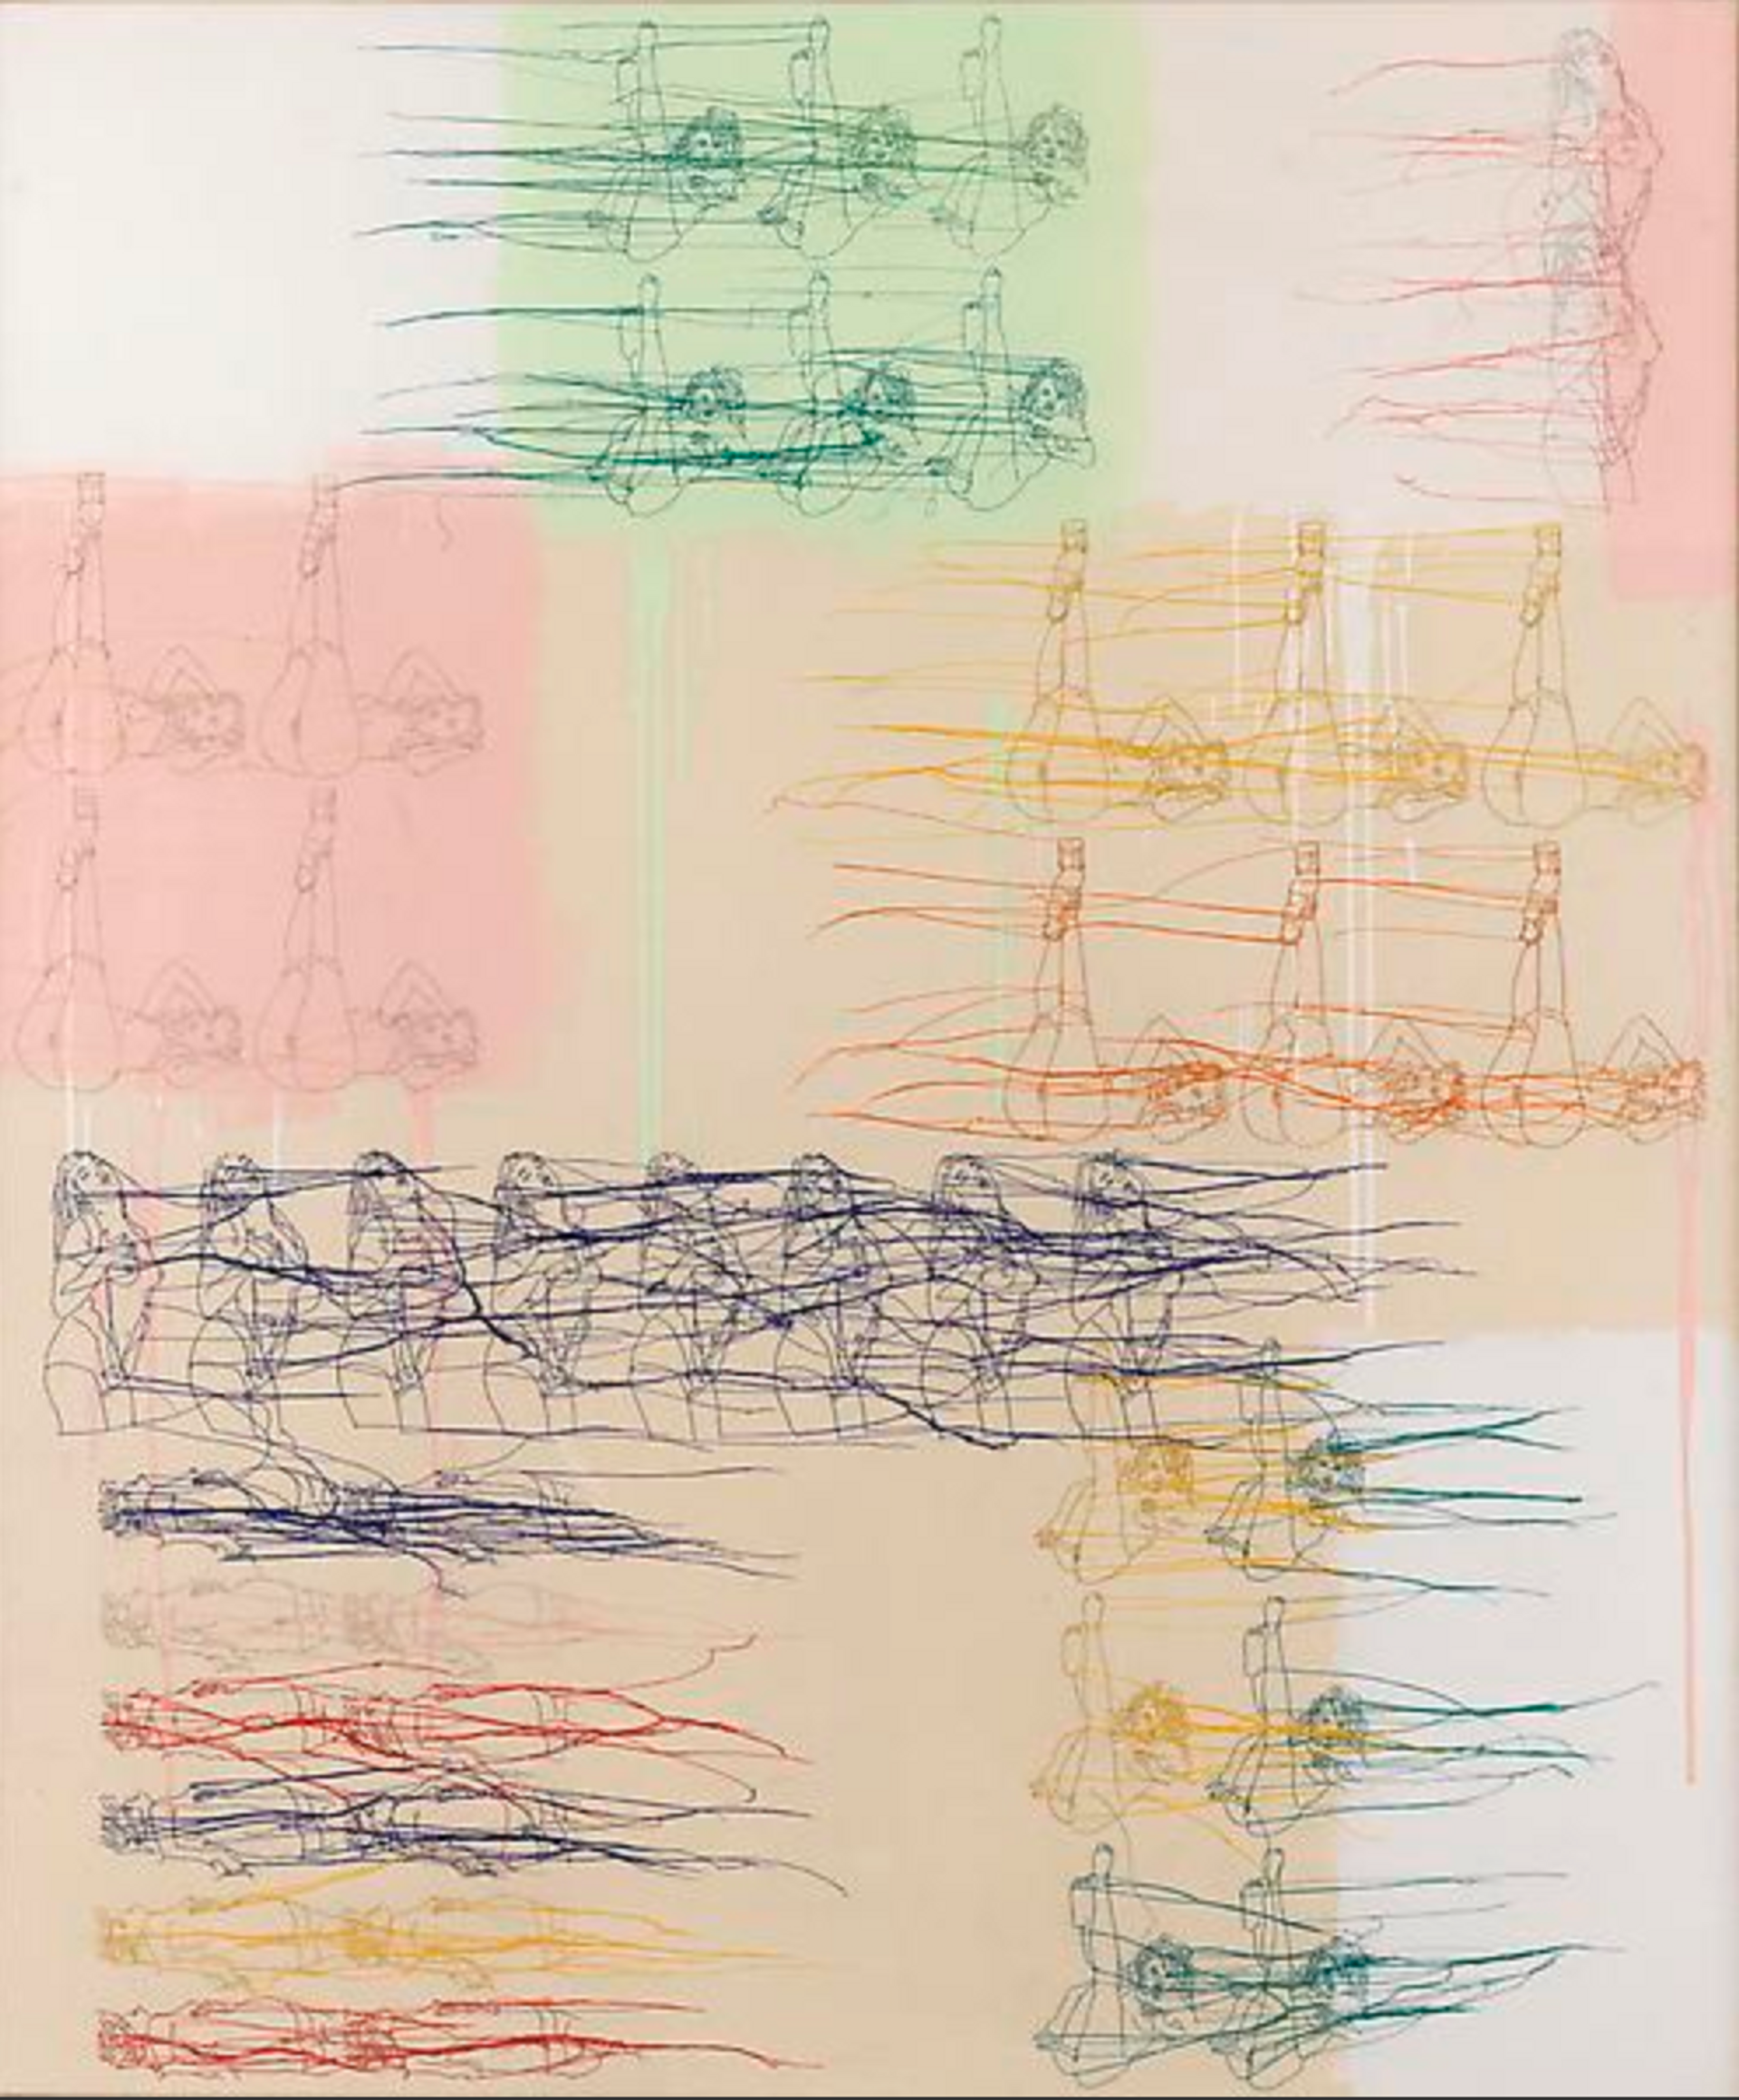 Ghada Amer THE SLIGHTLY SMALLER COLORED SQUARE PAINTING  (200) Courtesy of Cheim & Read